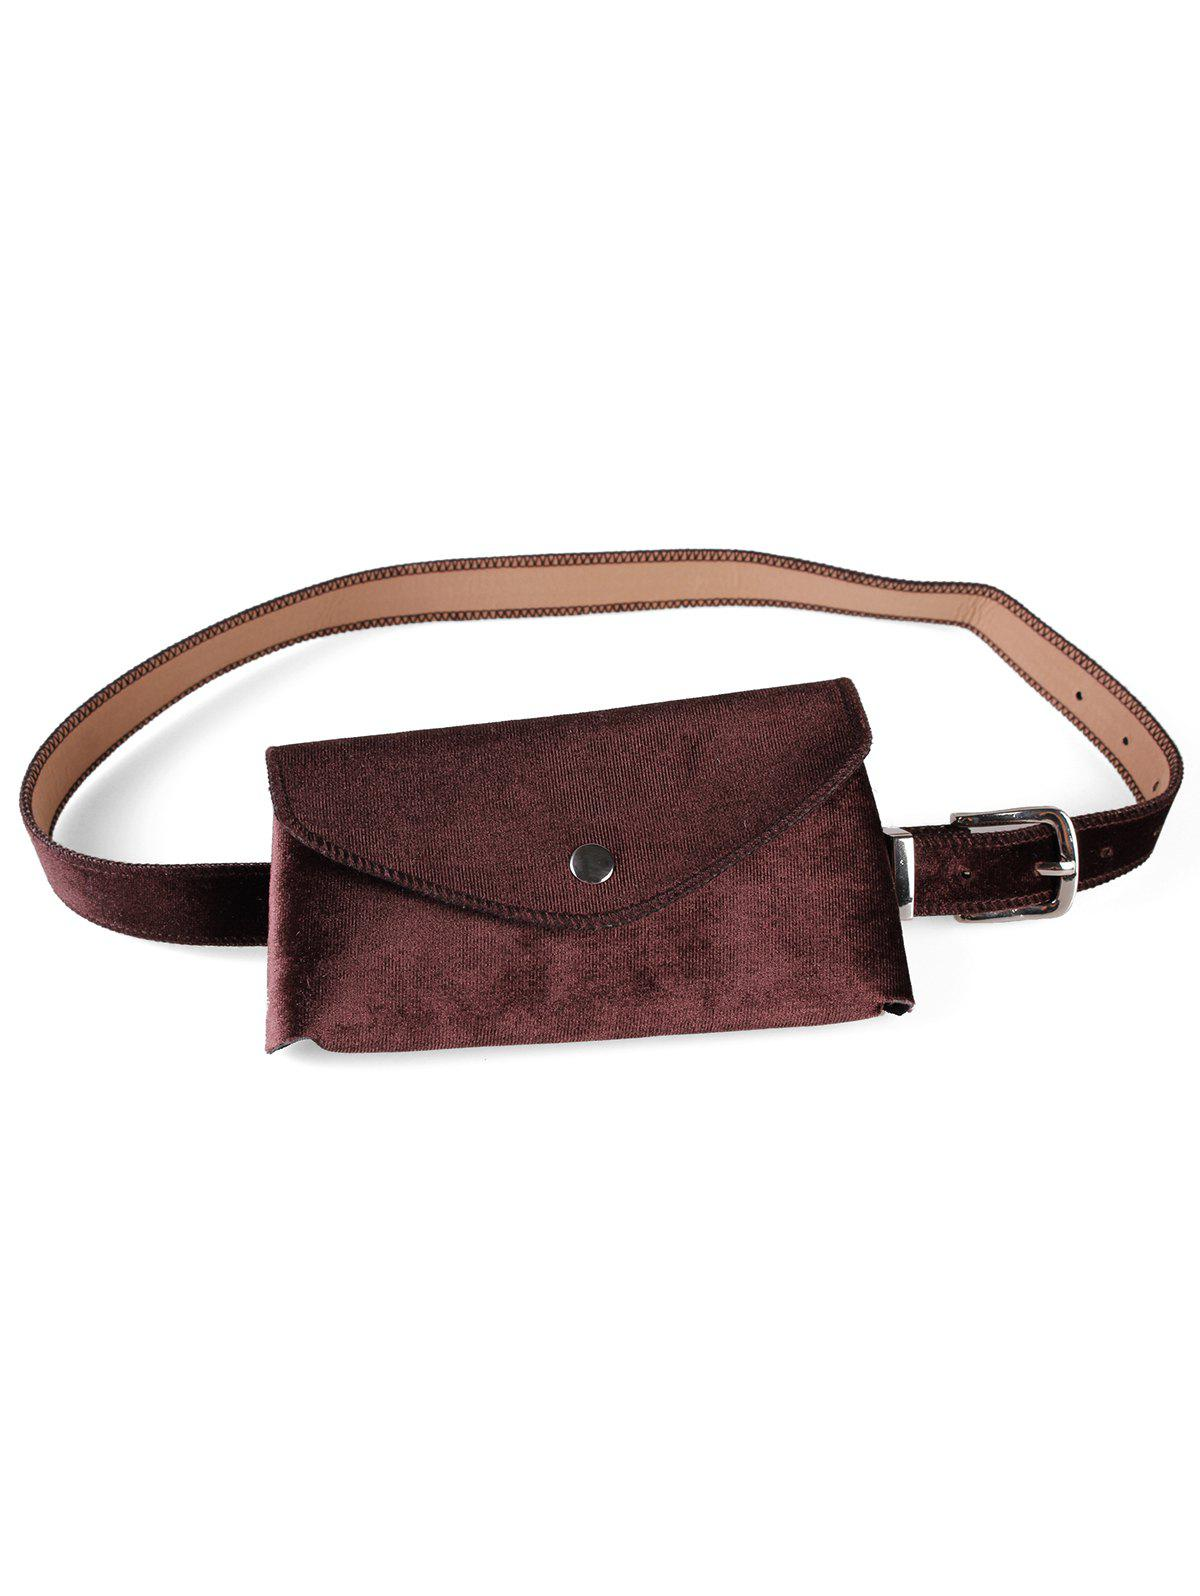 Cheap Vintage Fanny Pack Wasit Belt Bag